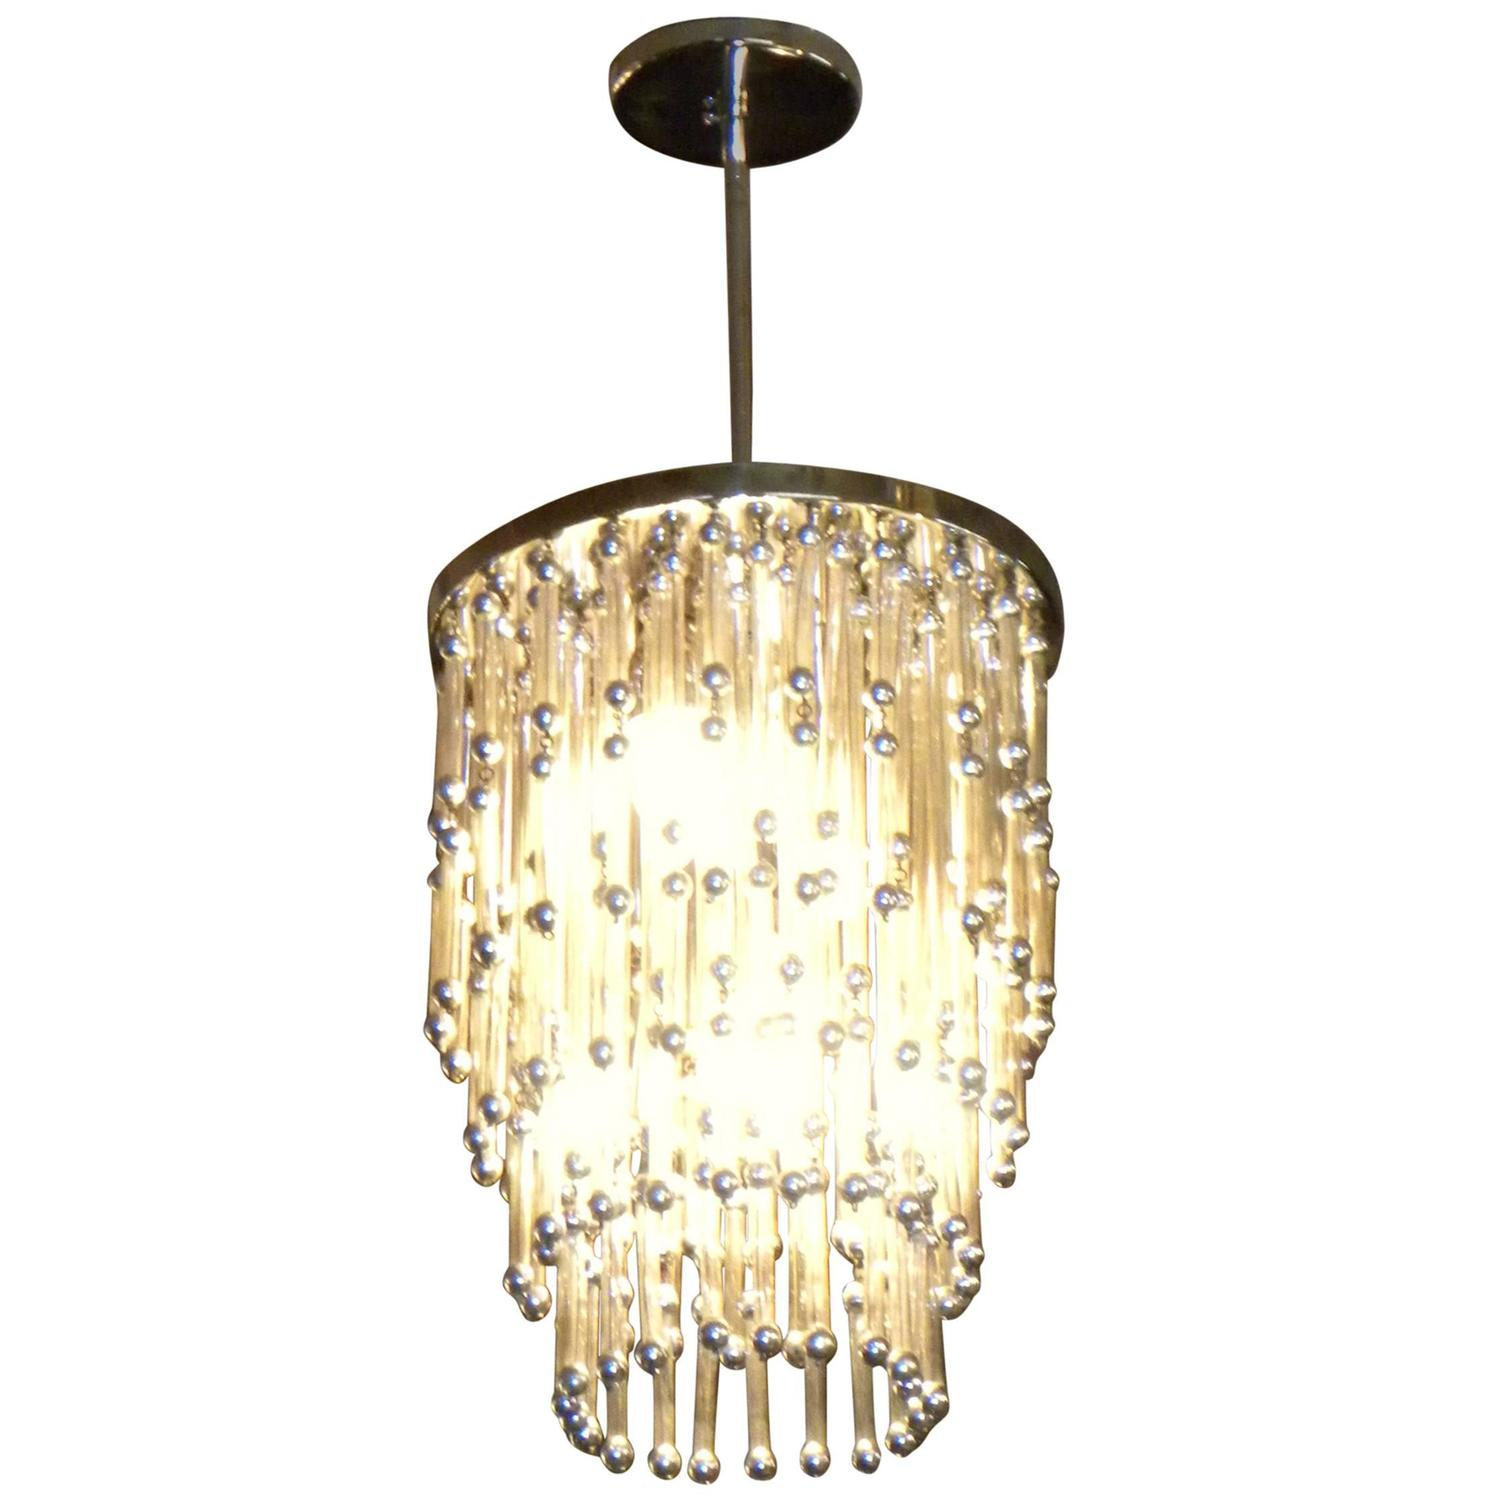 Art deco lighting for sale chandeliers art deco collection - Chandeliers on sale online ...